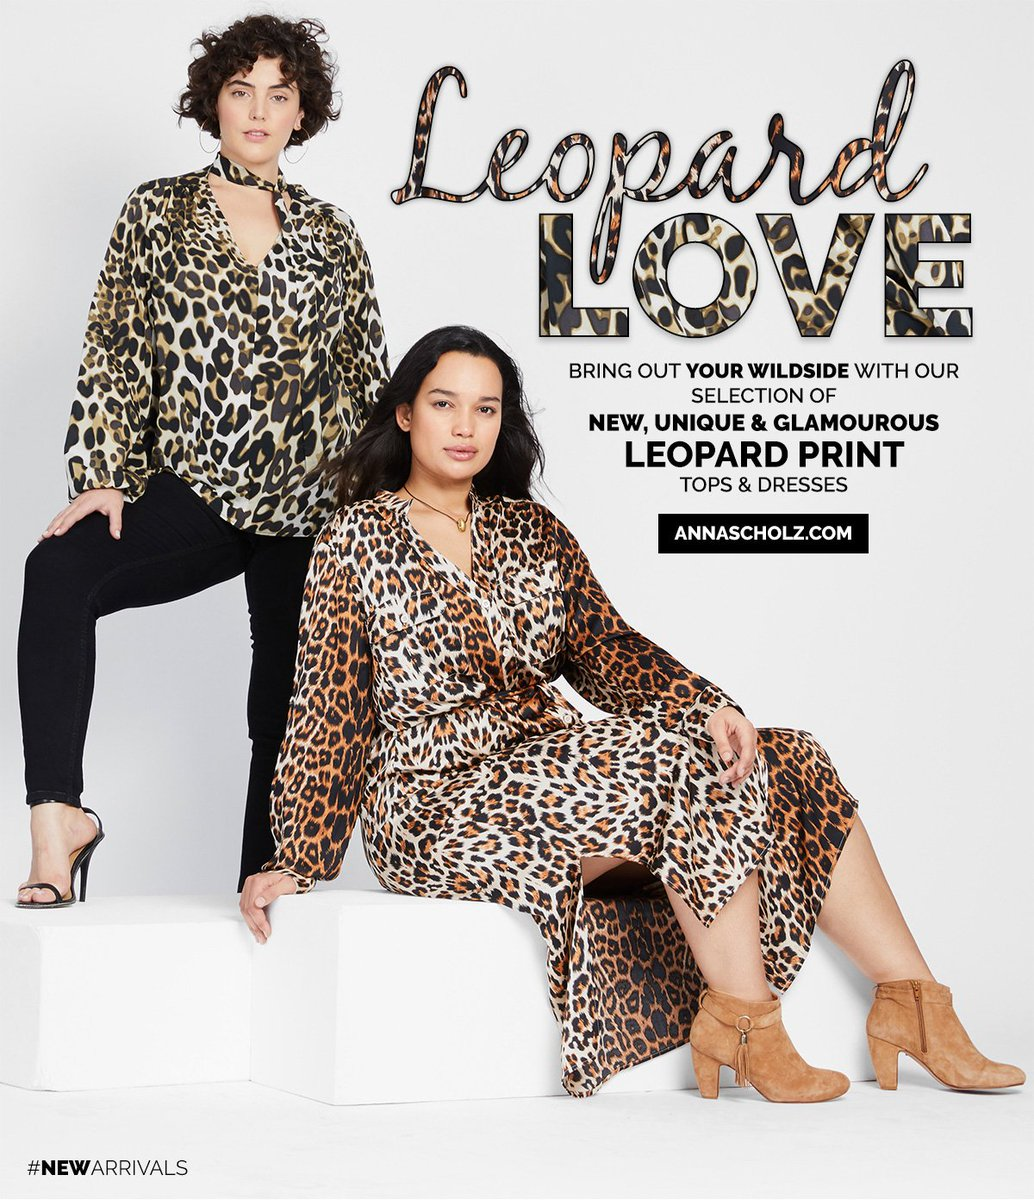 test Twitter Media - Leopard Love in at https://t.co/u33BnLAx8O #plussizedesigner #plussize https://t.co/Vj9bvDg3YN